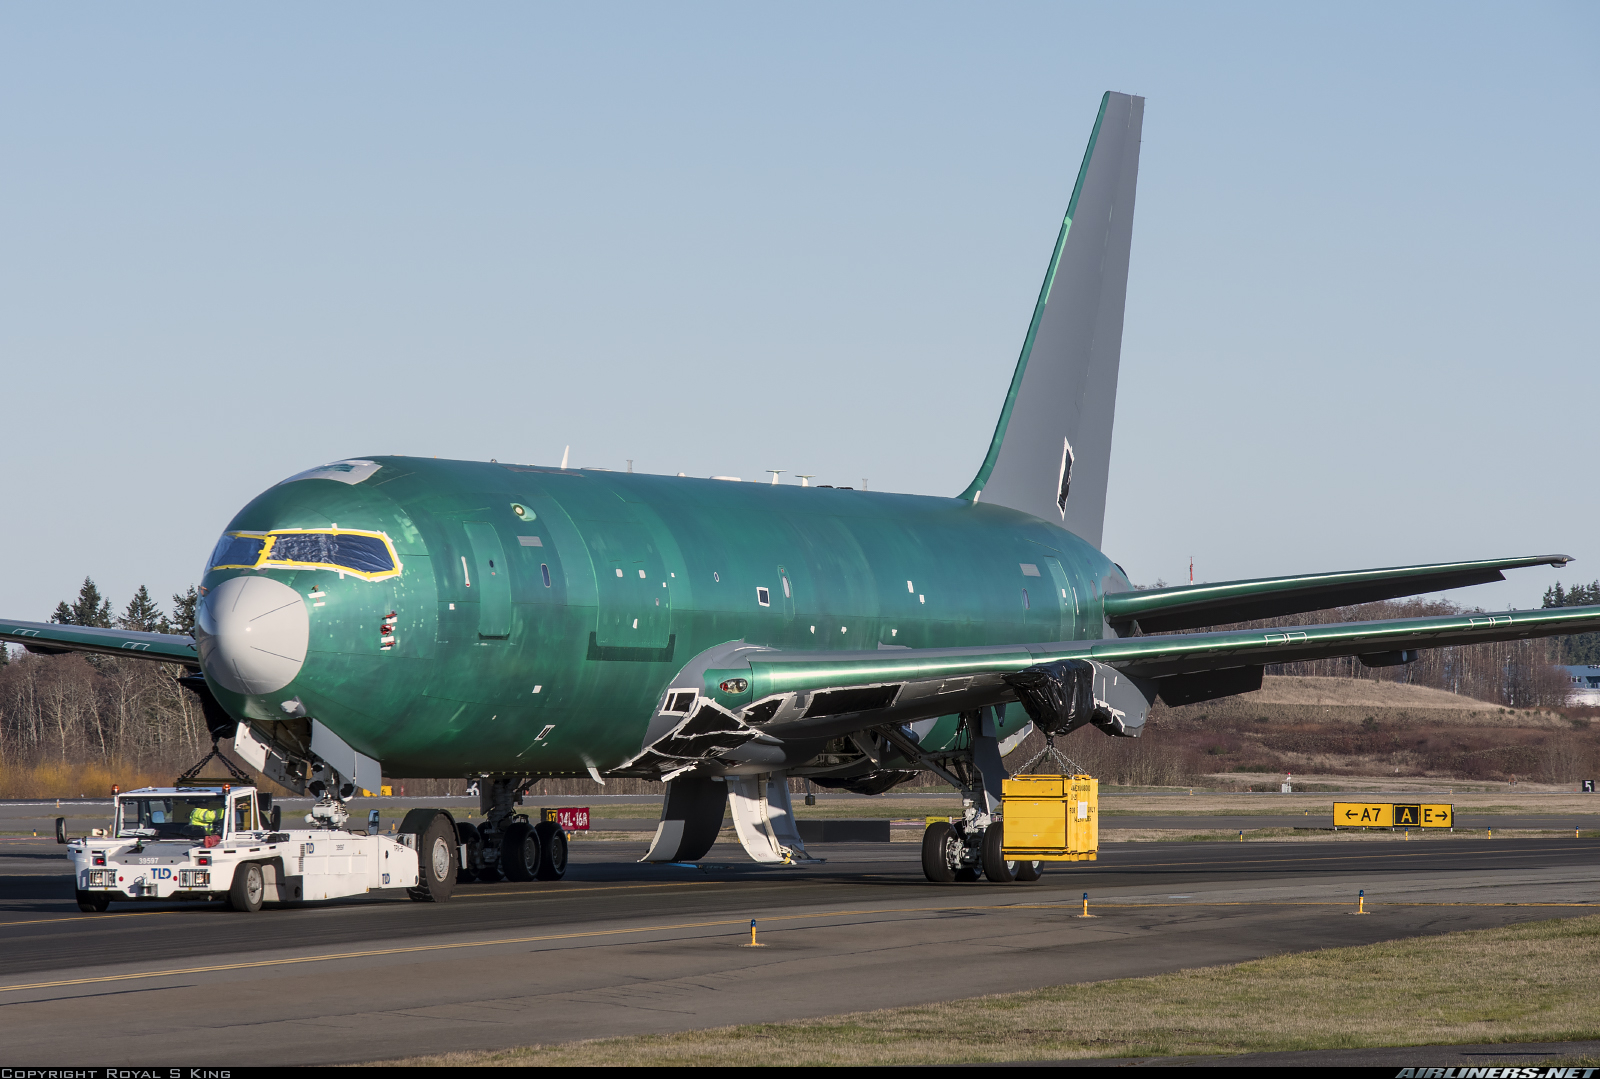 KC-46 - Page 13 180429085105750388